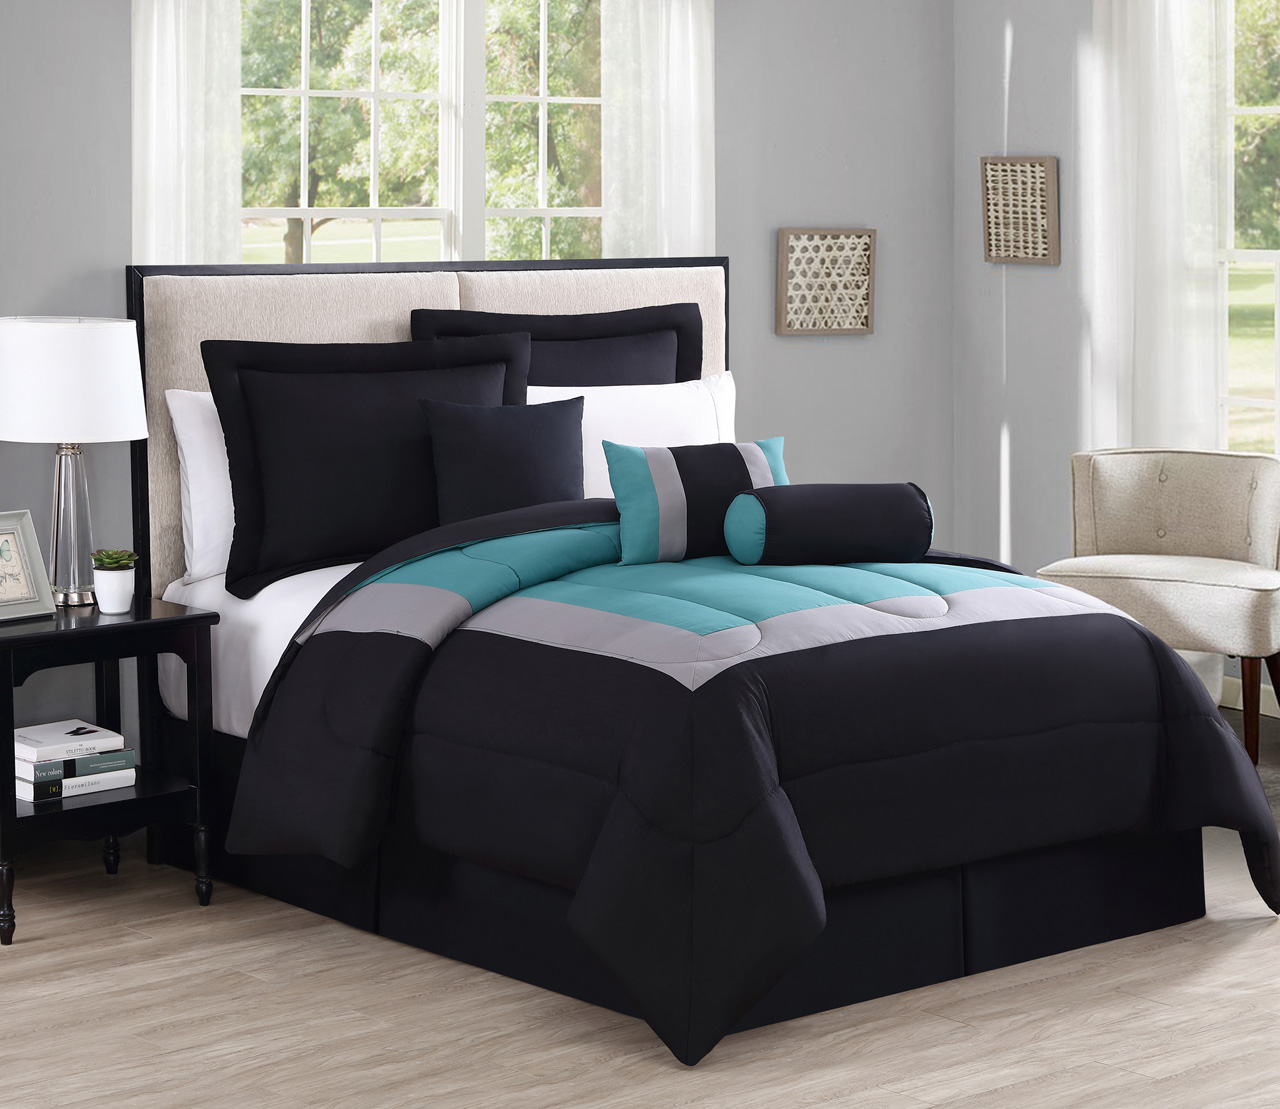 11 piece cal king rosslyn black teal bed in a bag w 600tc sheet set